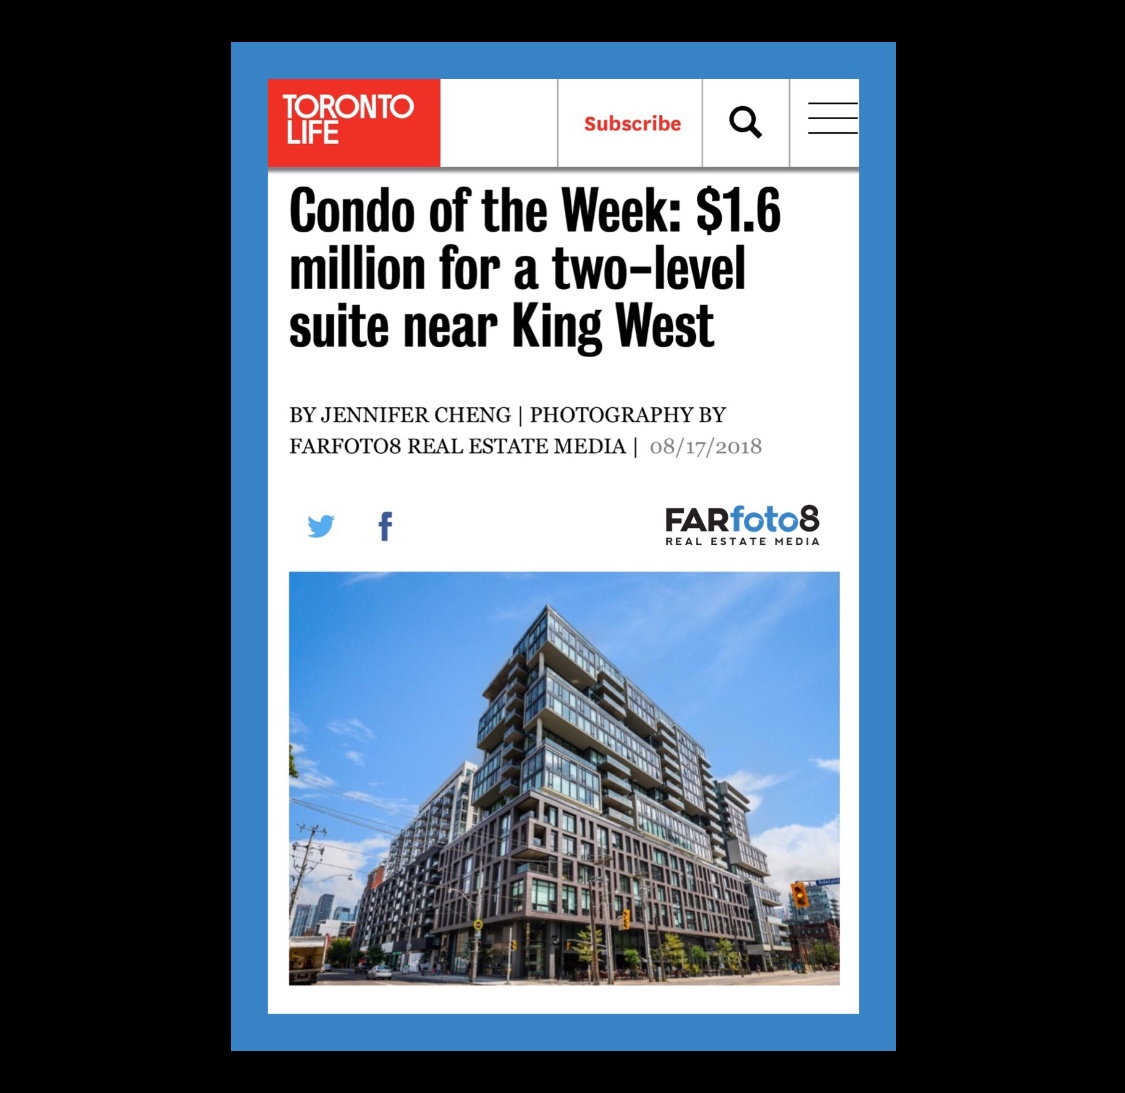 Toronto Life – Condo of the Week